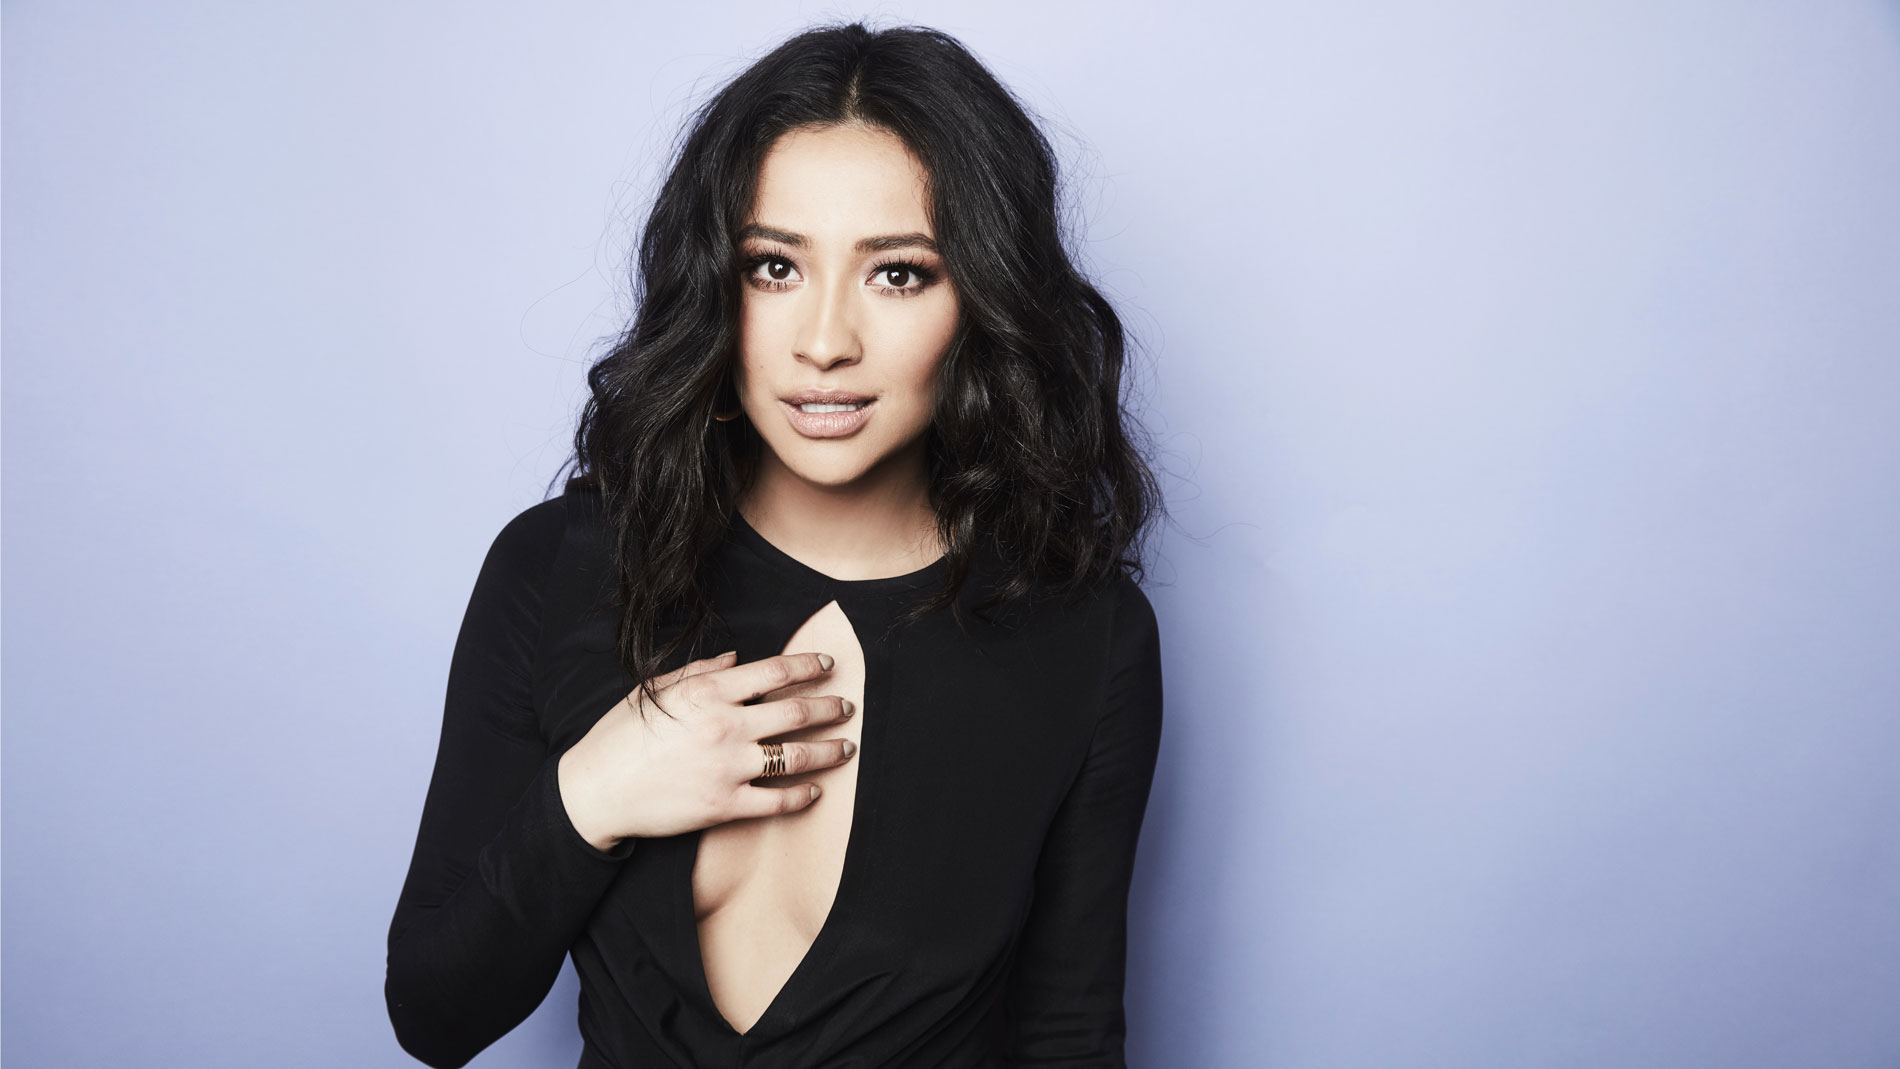 Shay Mitchell's Controversial Stance on Breakfast and Her Post-PLL Plans